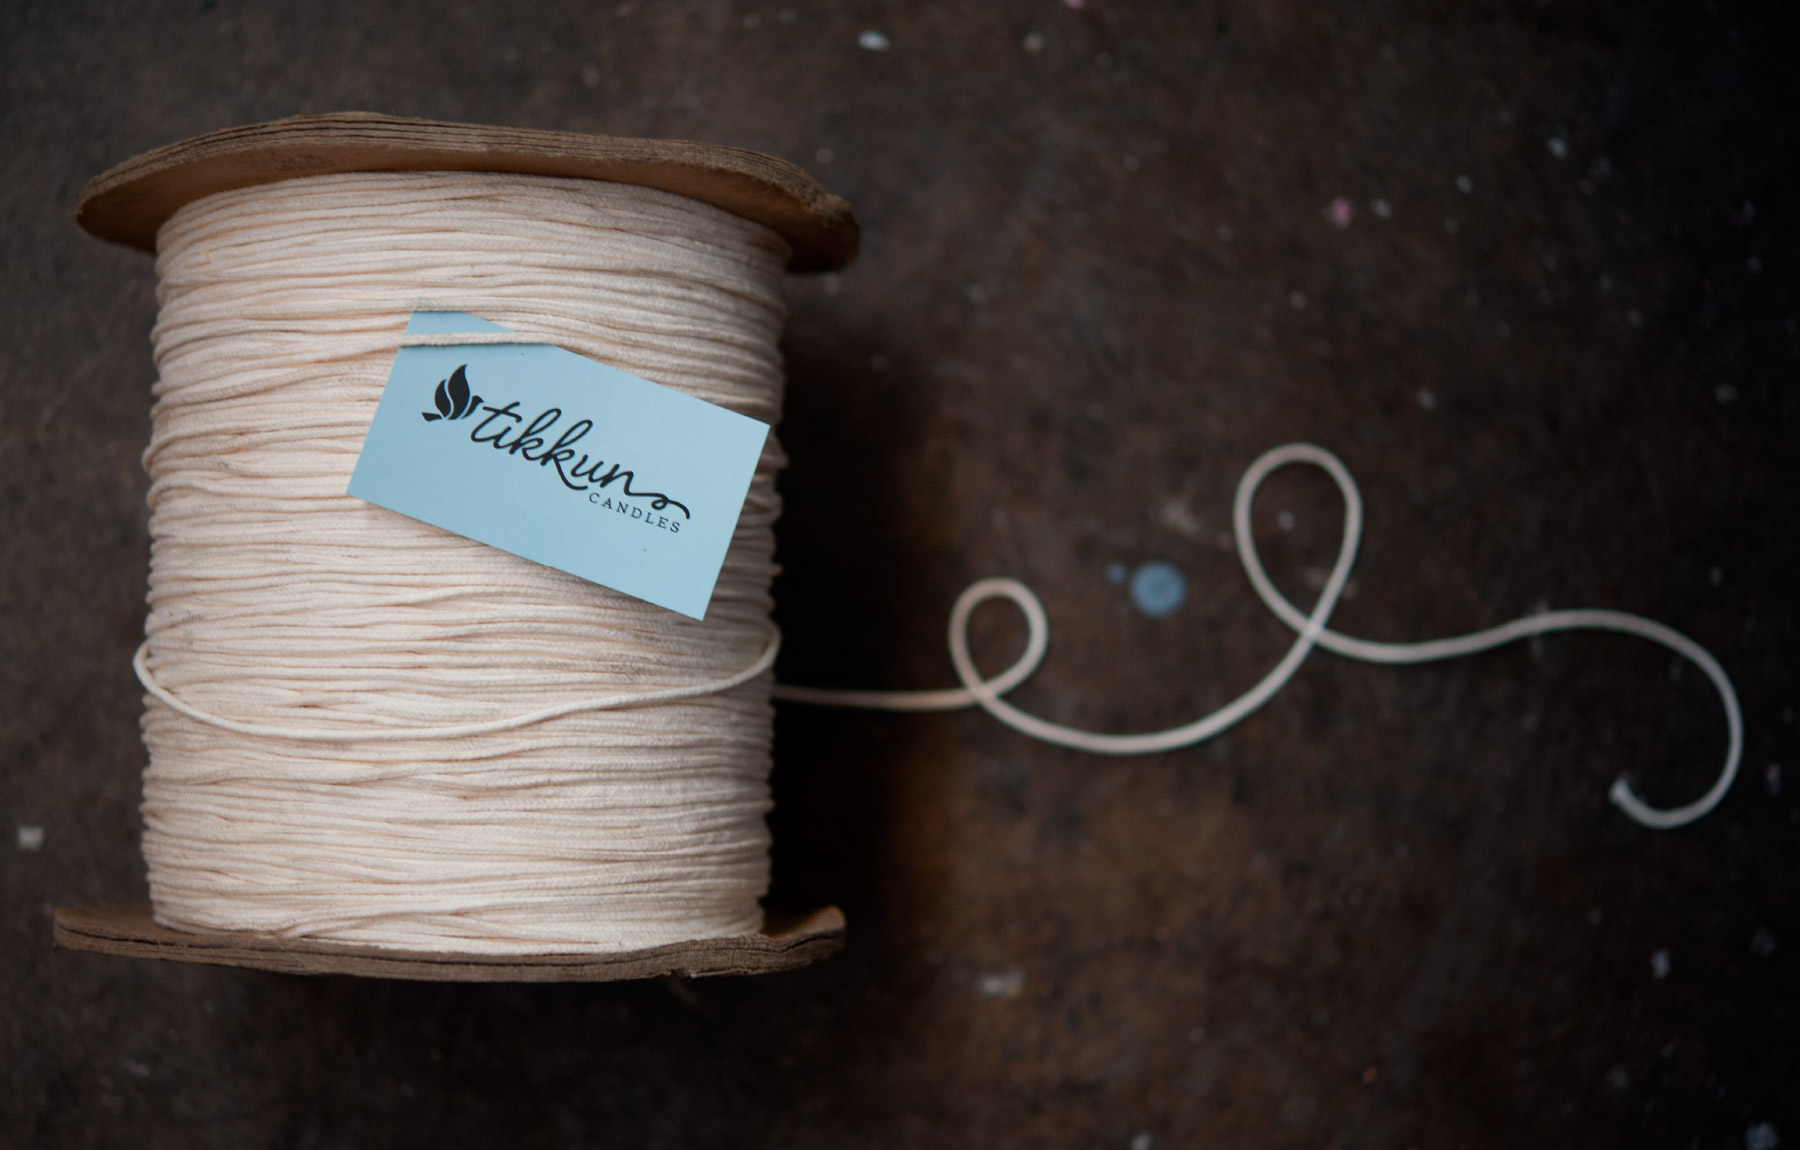 Business card on spool of thread